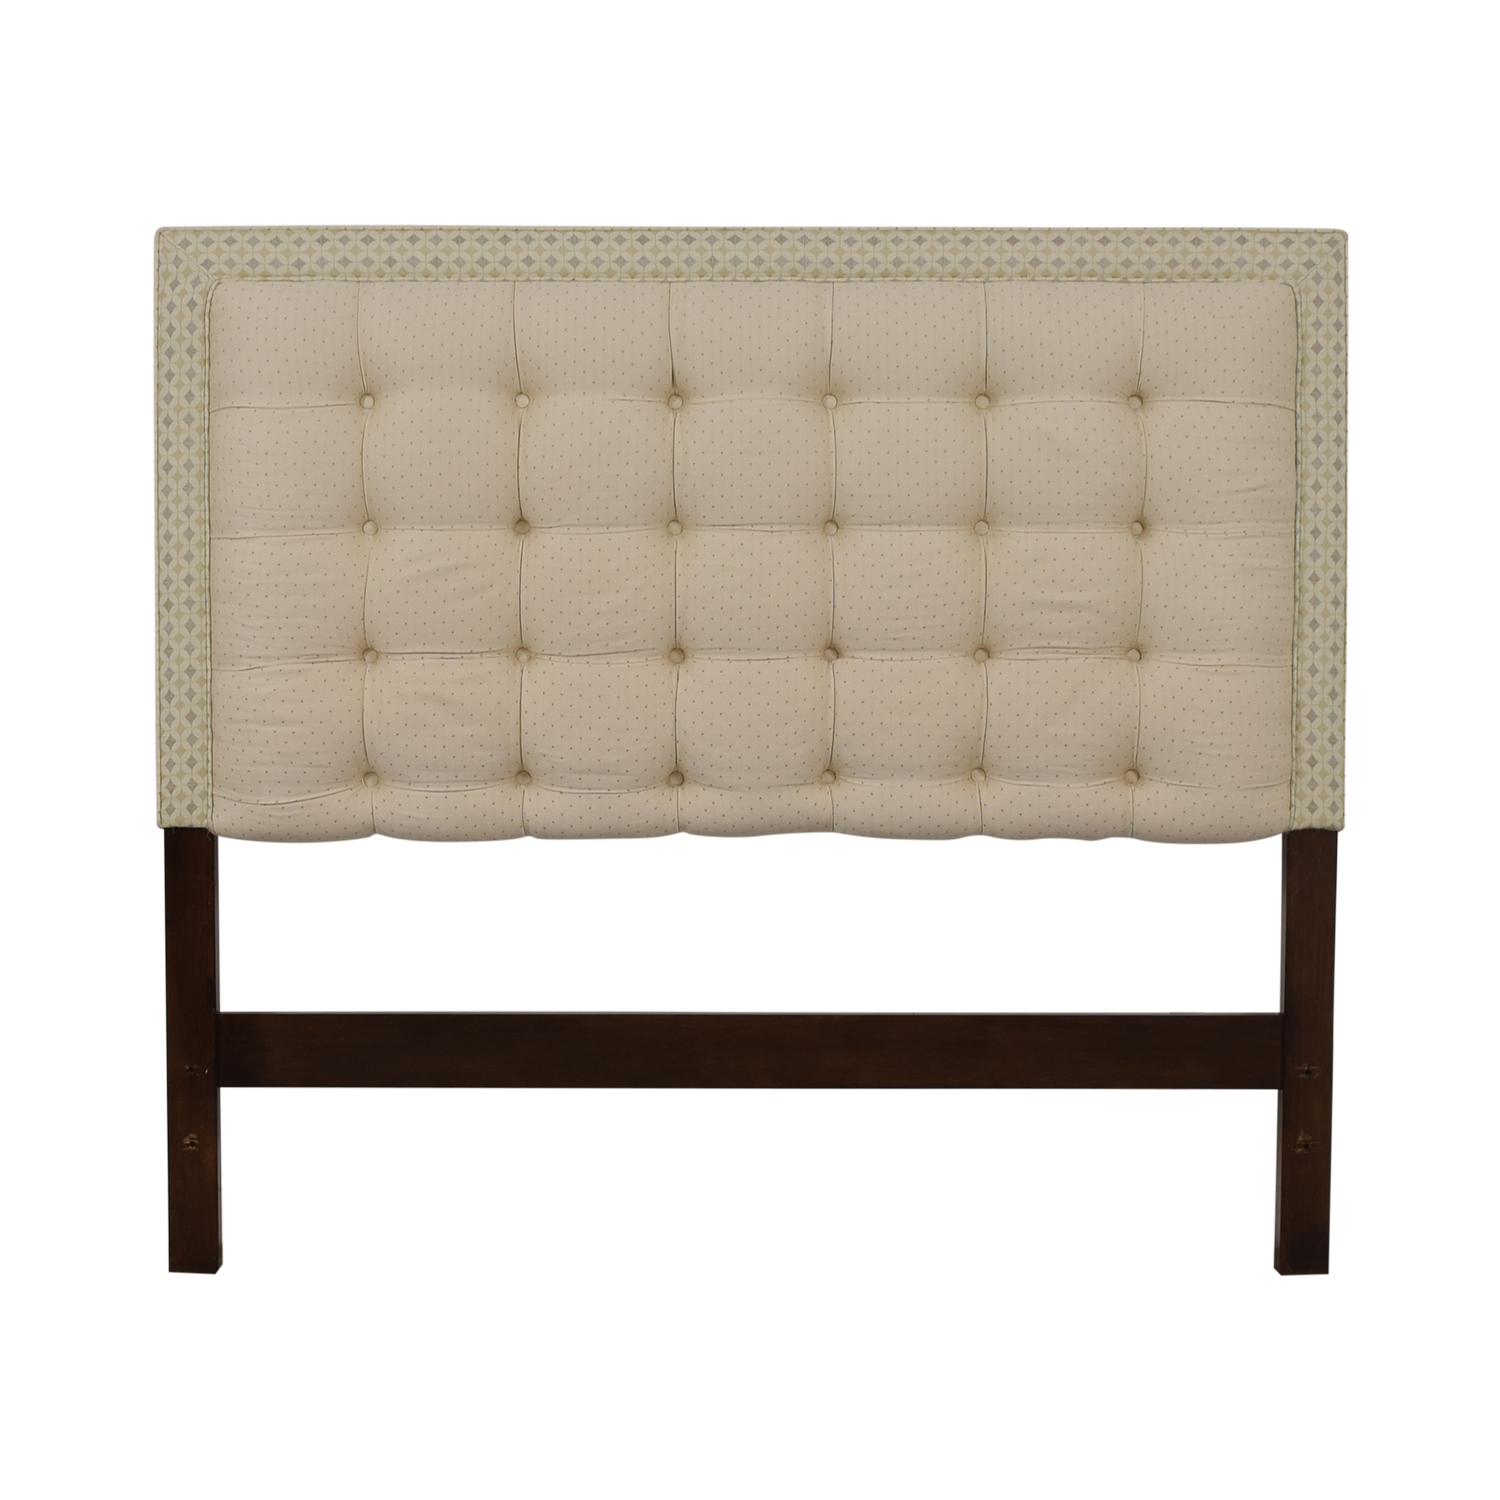 Custom Creme Tufted Queen Headboard used